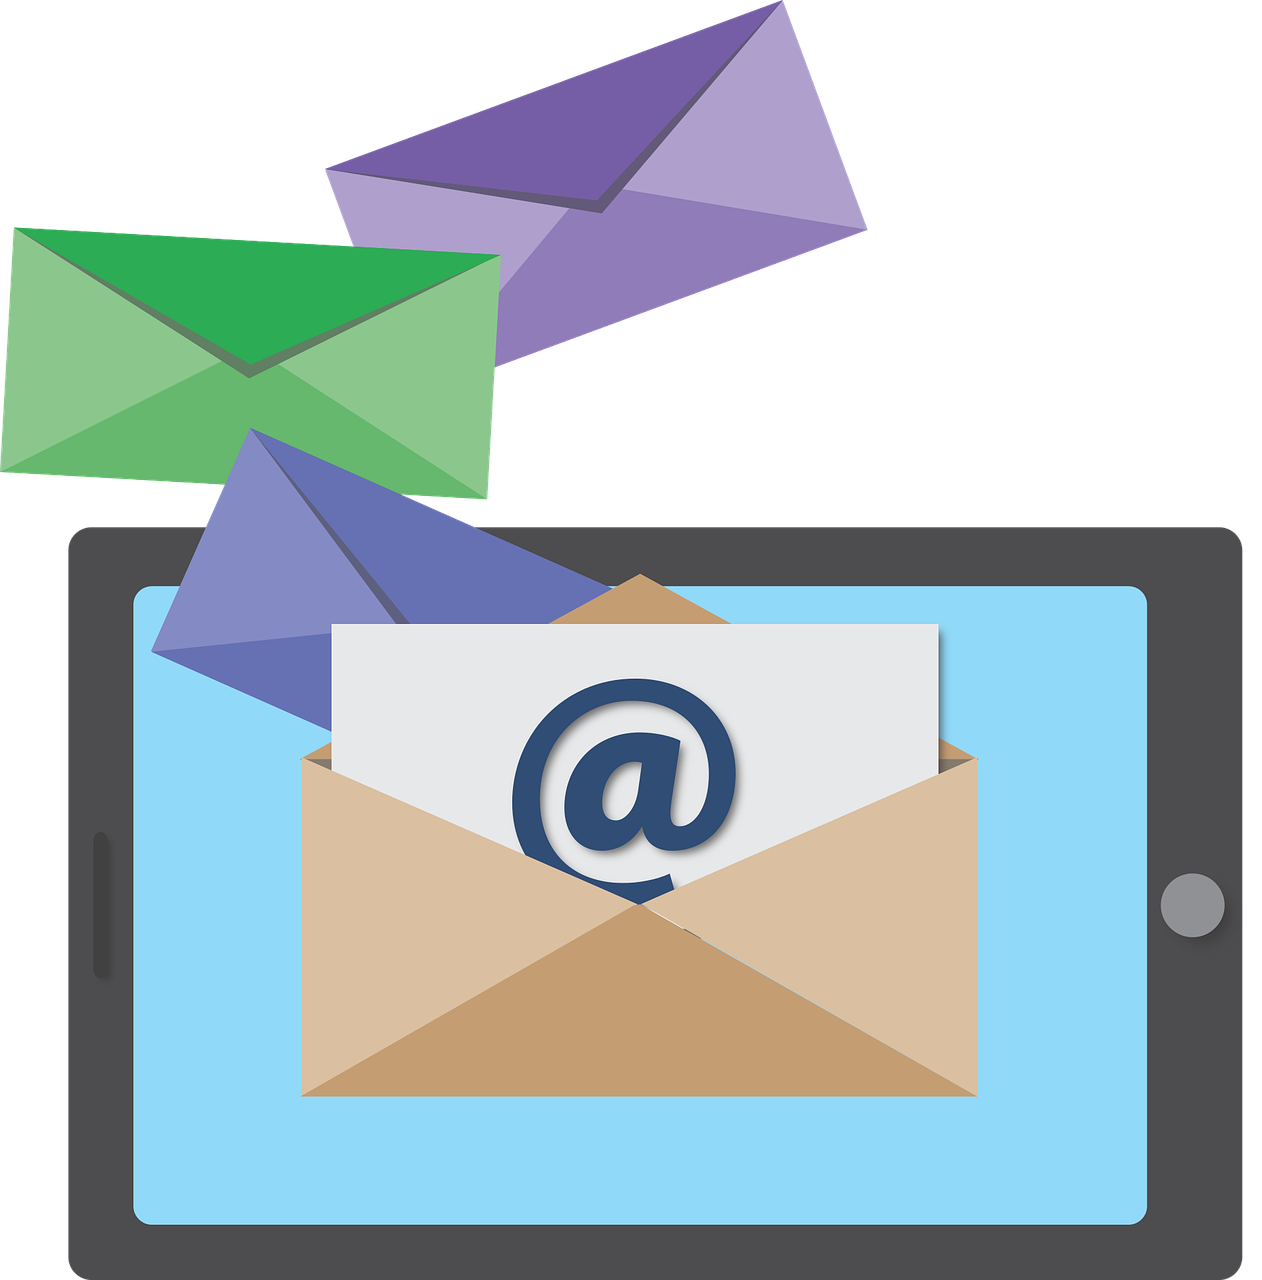 Opening up meaningful conversations. Email clipart means communication